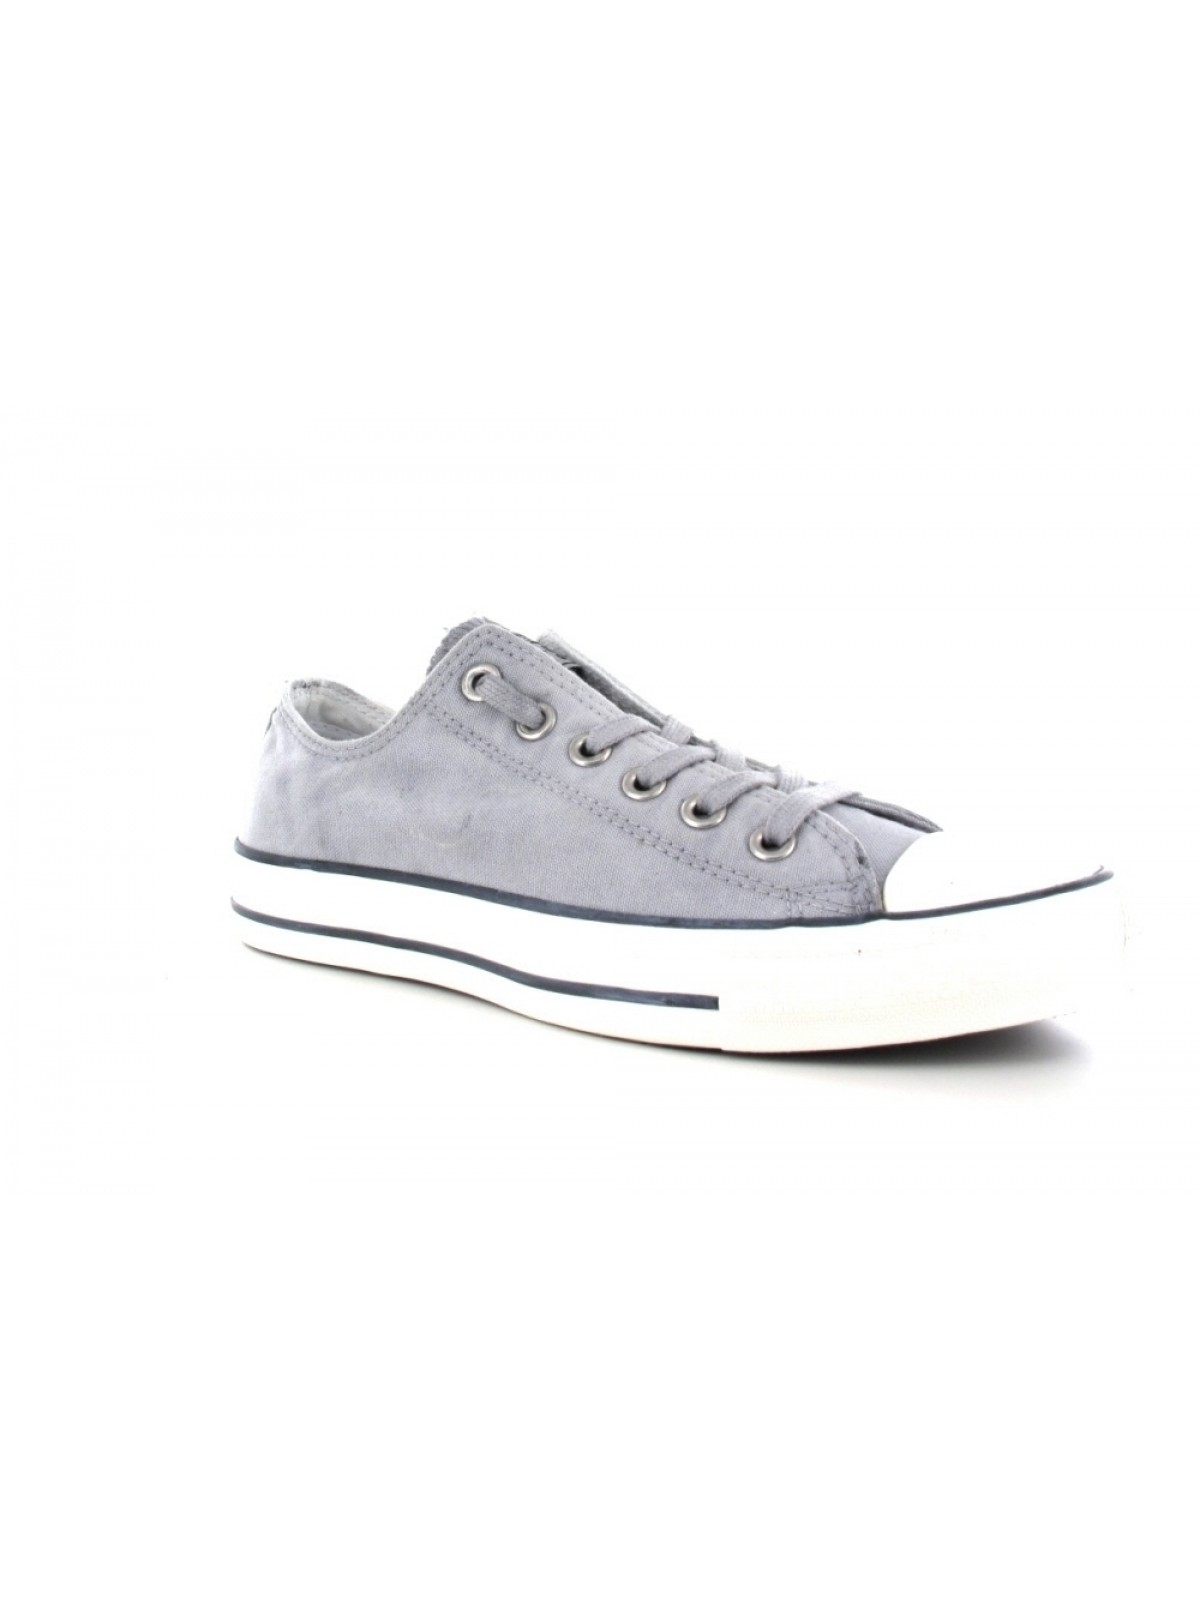 Converse Chuck Taylor all star toile basse wash dolphin